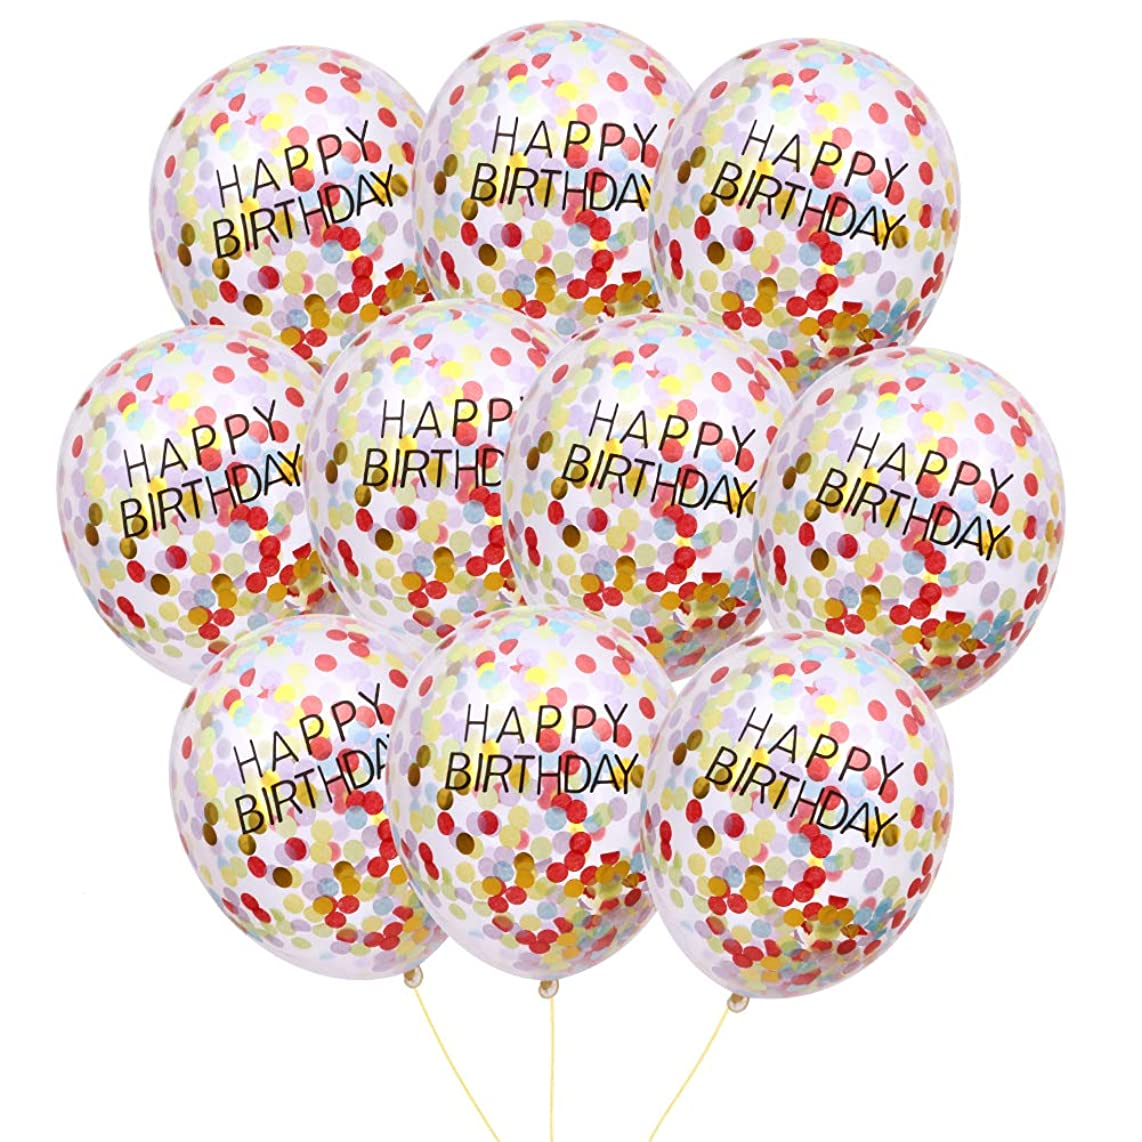 MEYSIMOON Happy Birthday Confetti Balloons Transparent Latex Balloon with Colorful Confetti Prefilled for Kids Birthday Parties Decorations (15Pcs 12inch)